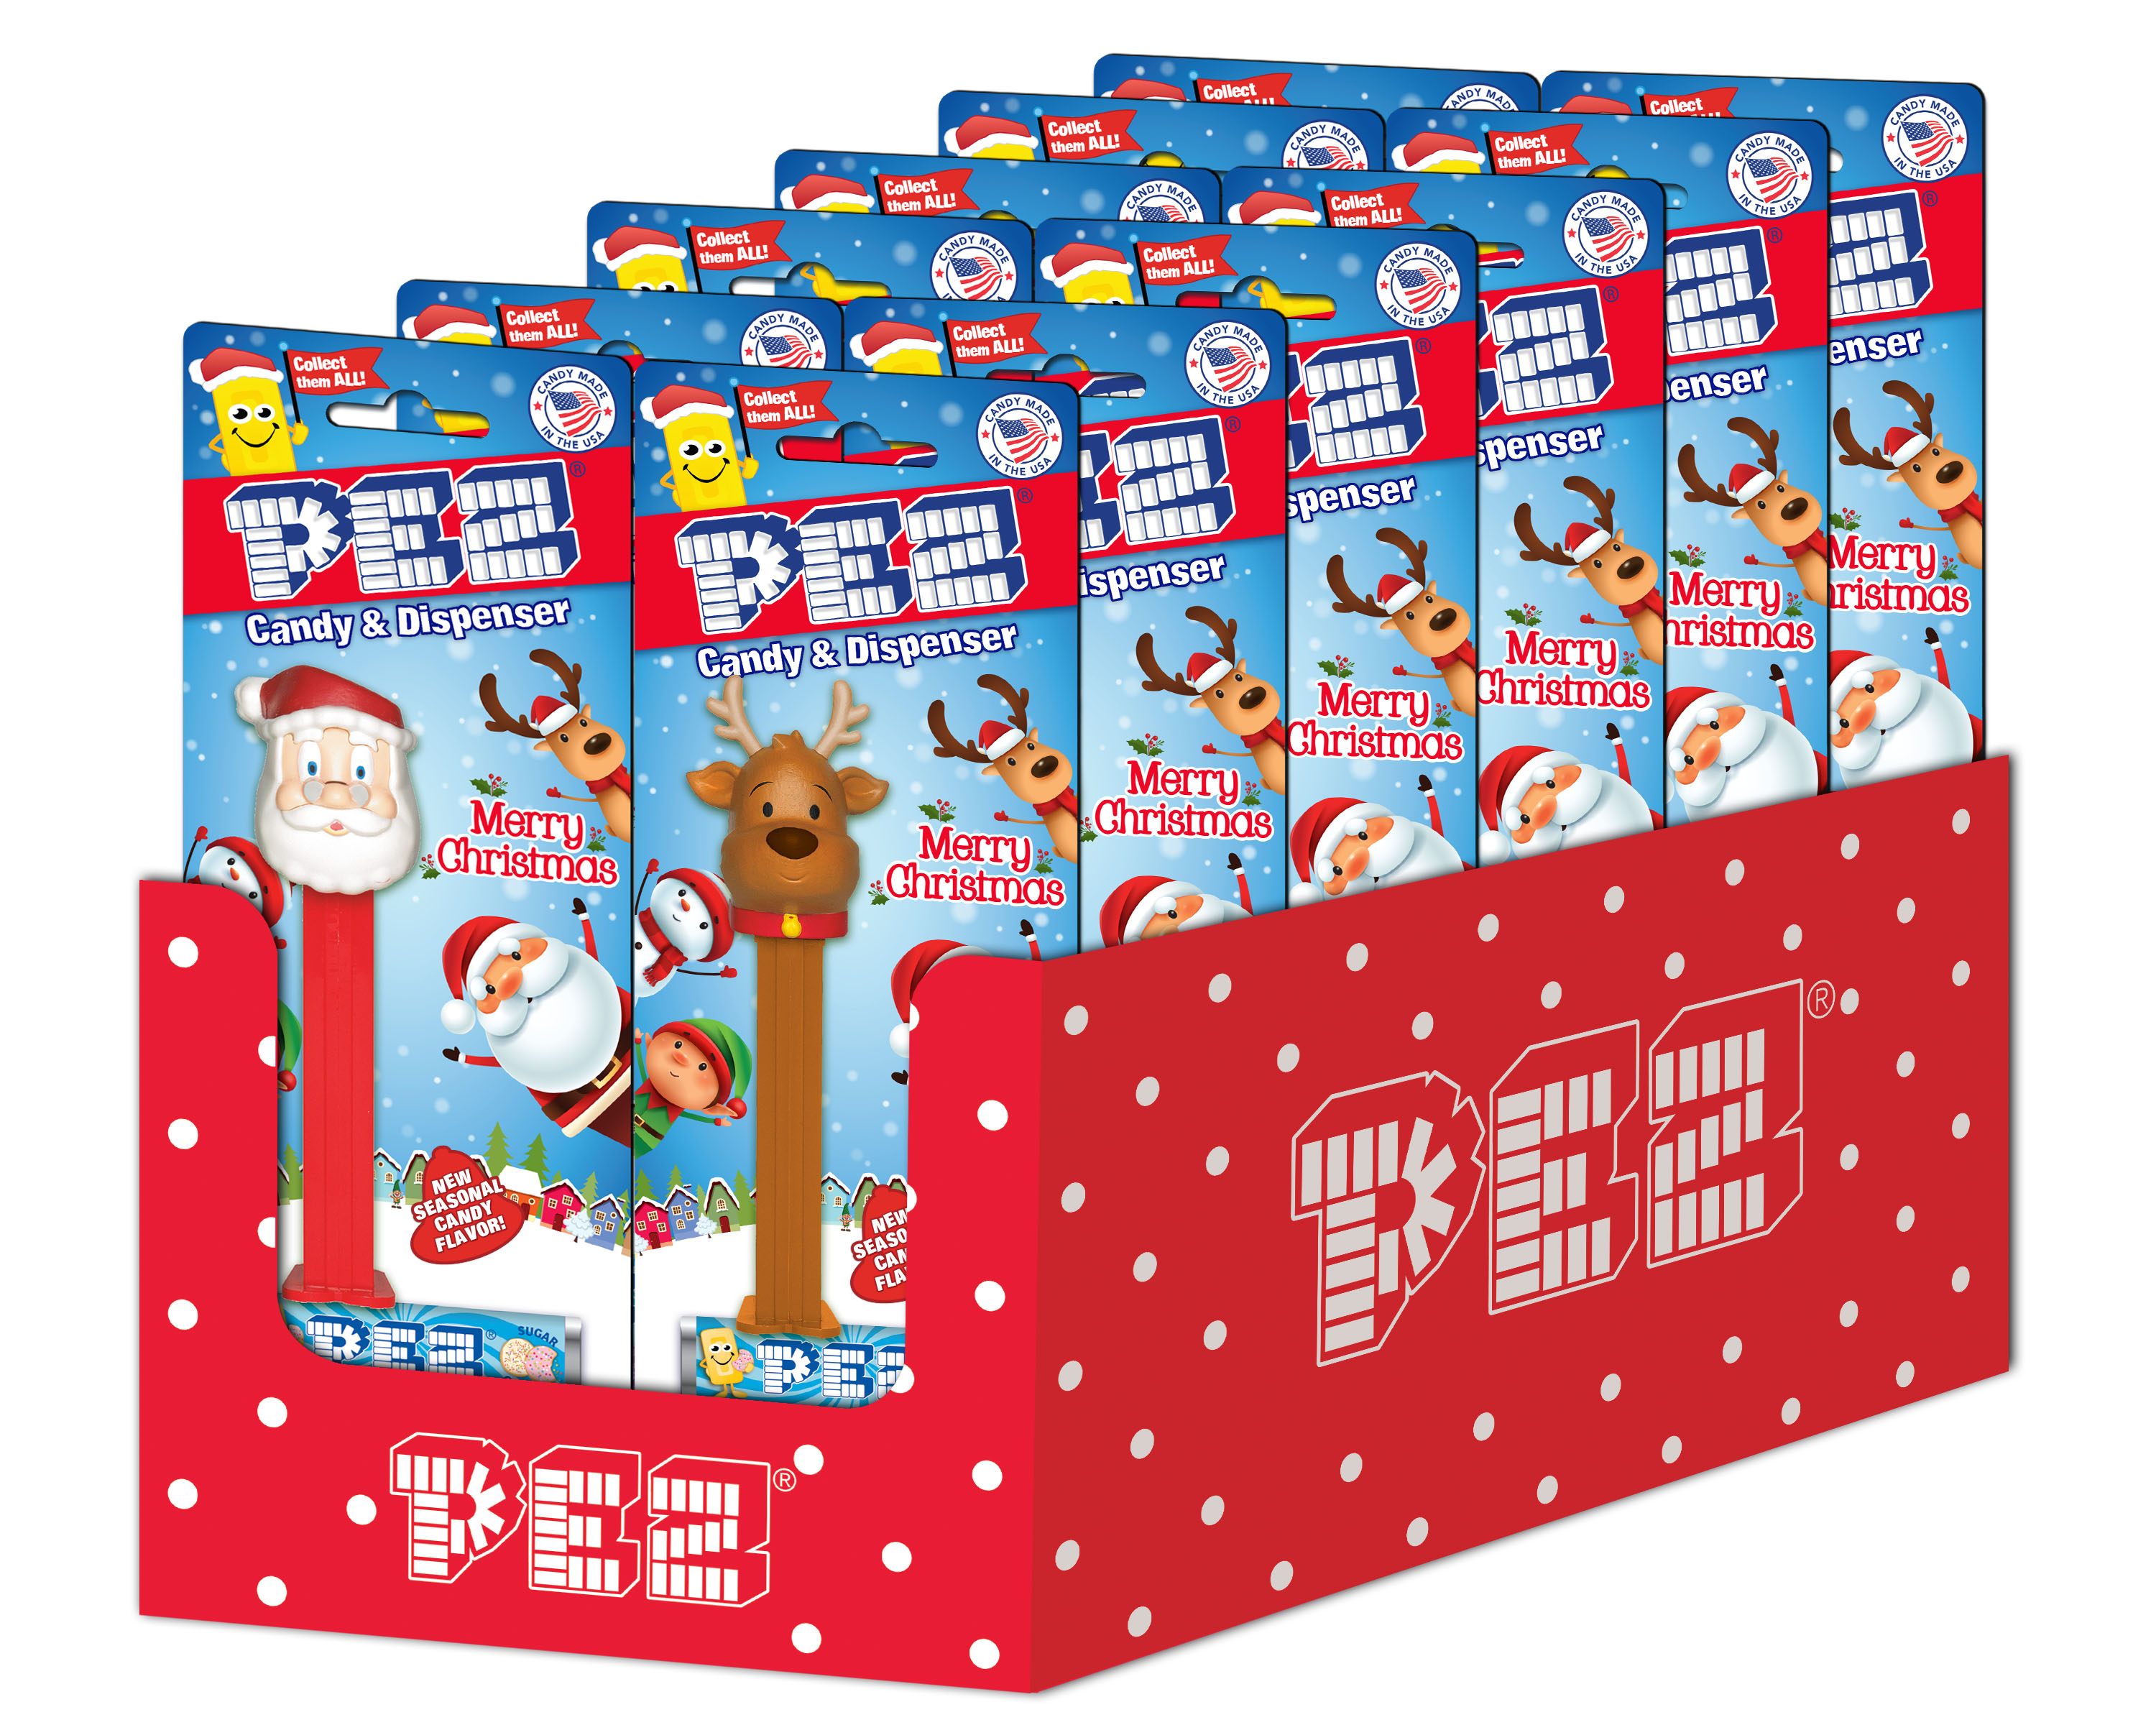 PEZ - CHRISTMAS ASSORTMENT 12 CT